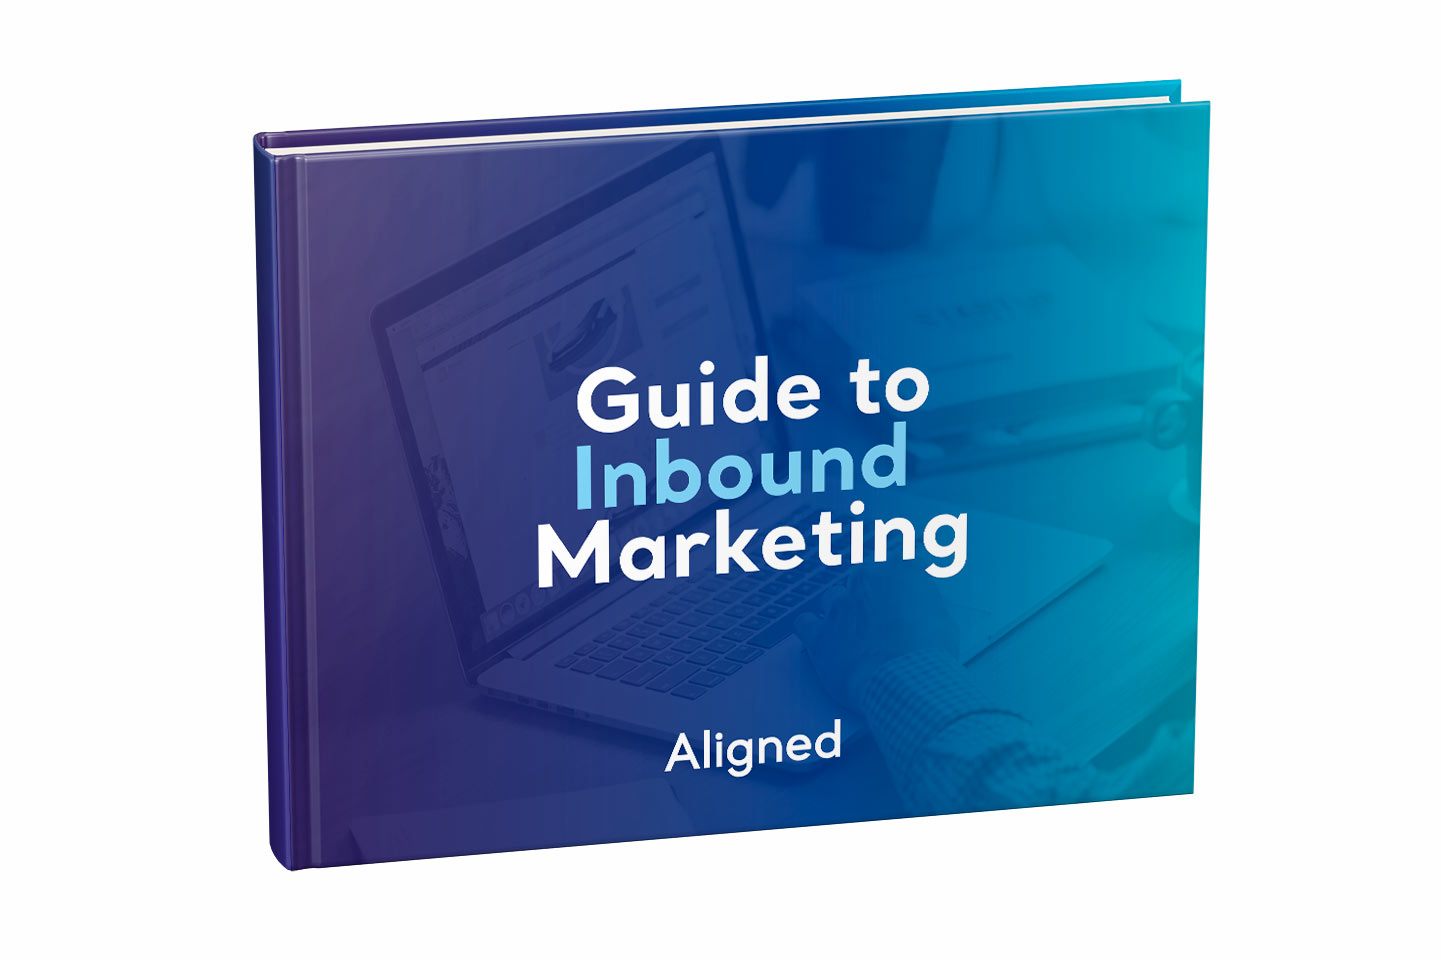 Download our Guide to Inbound Marketing